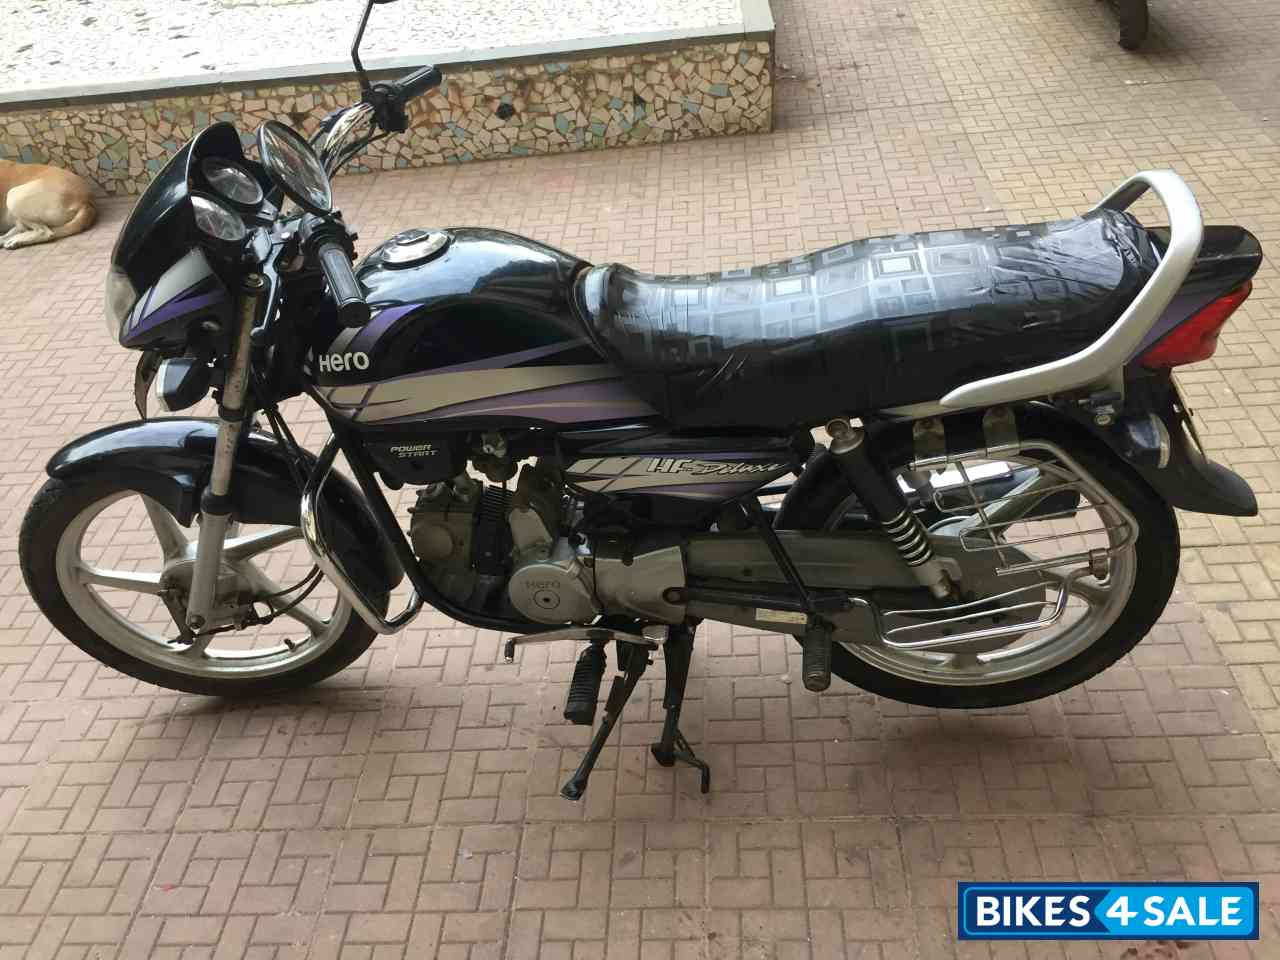 Used 2013 Model Hero Hf Deluxe For Sale In Mumbai Id 197288 Black And Purple Colour Bikes4sale